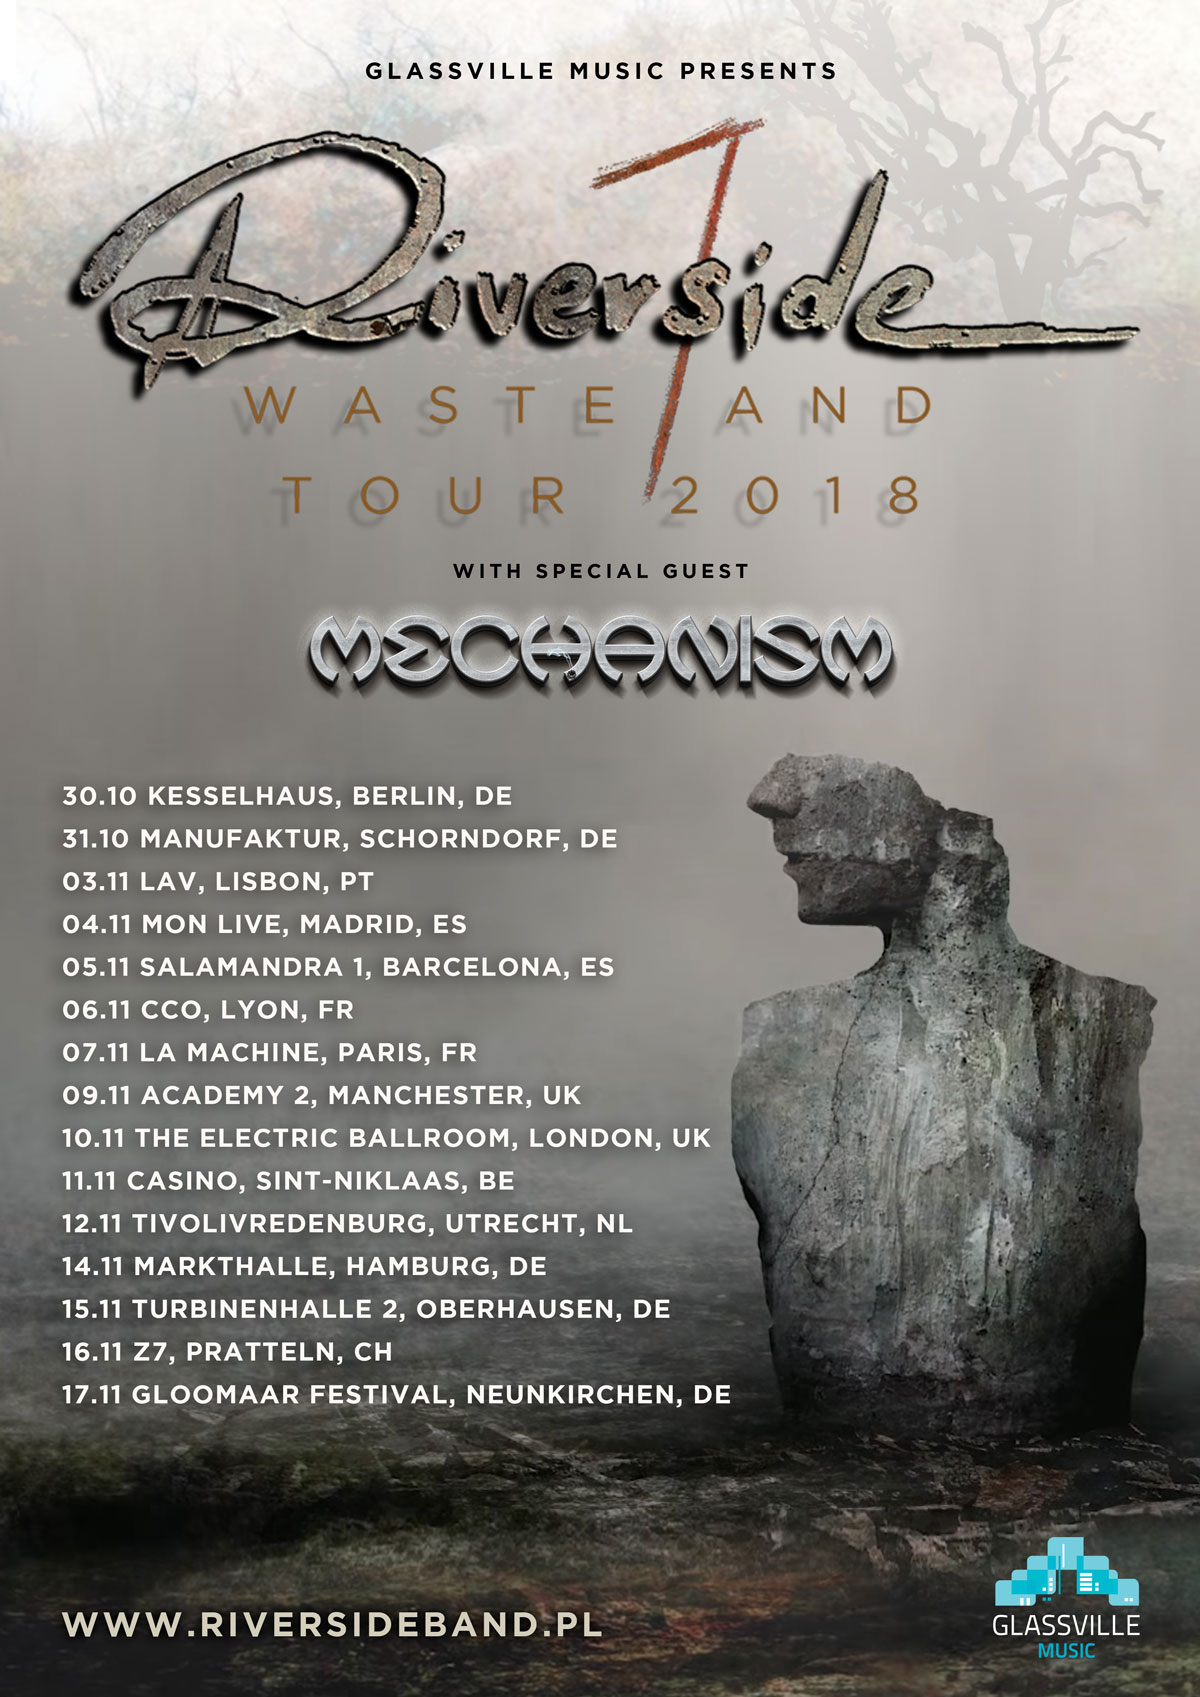 Riverside 2018 Tour European Leg